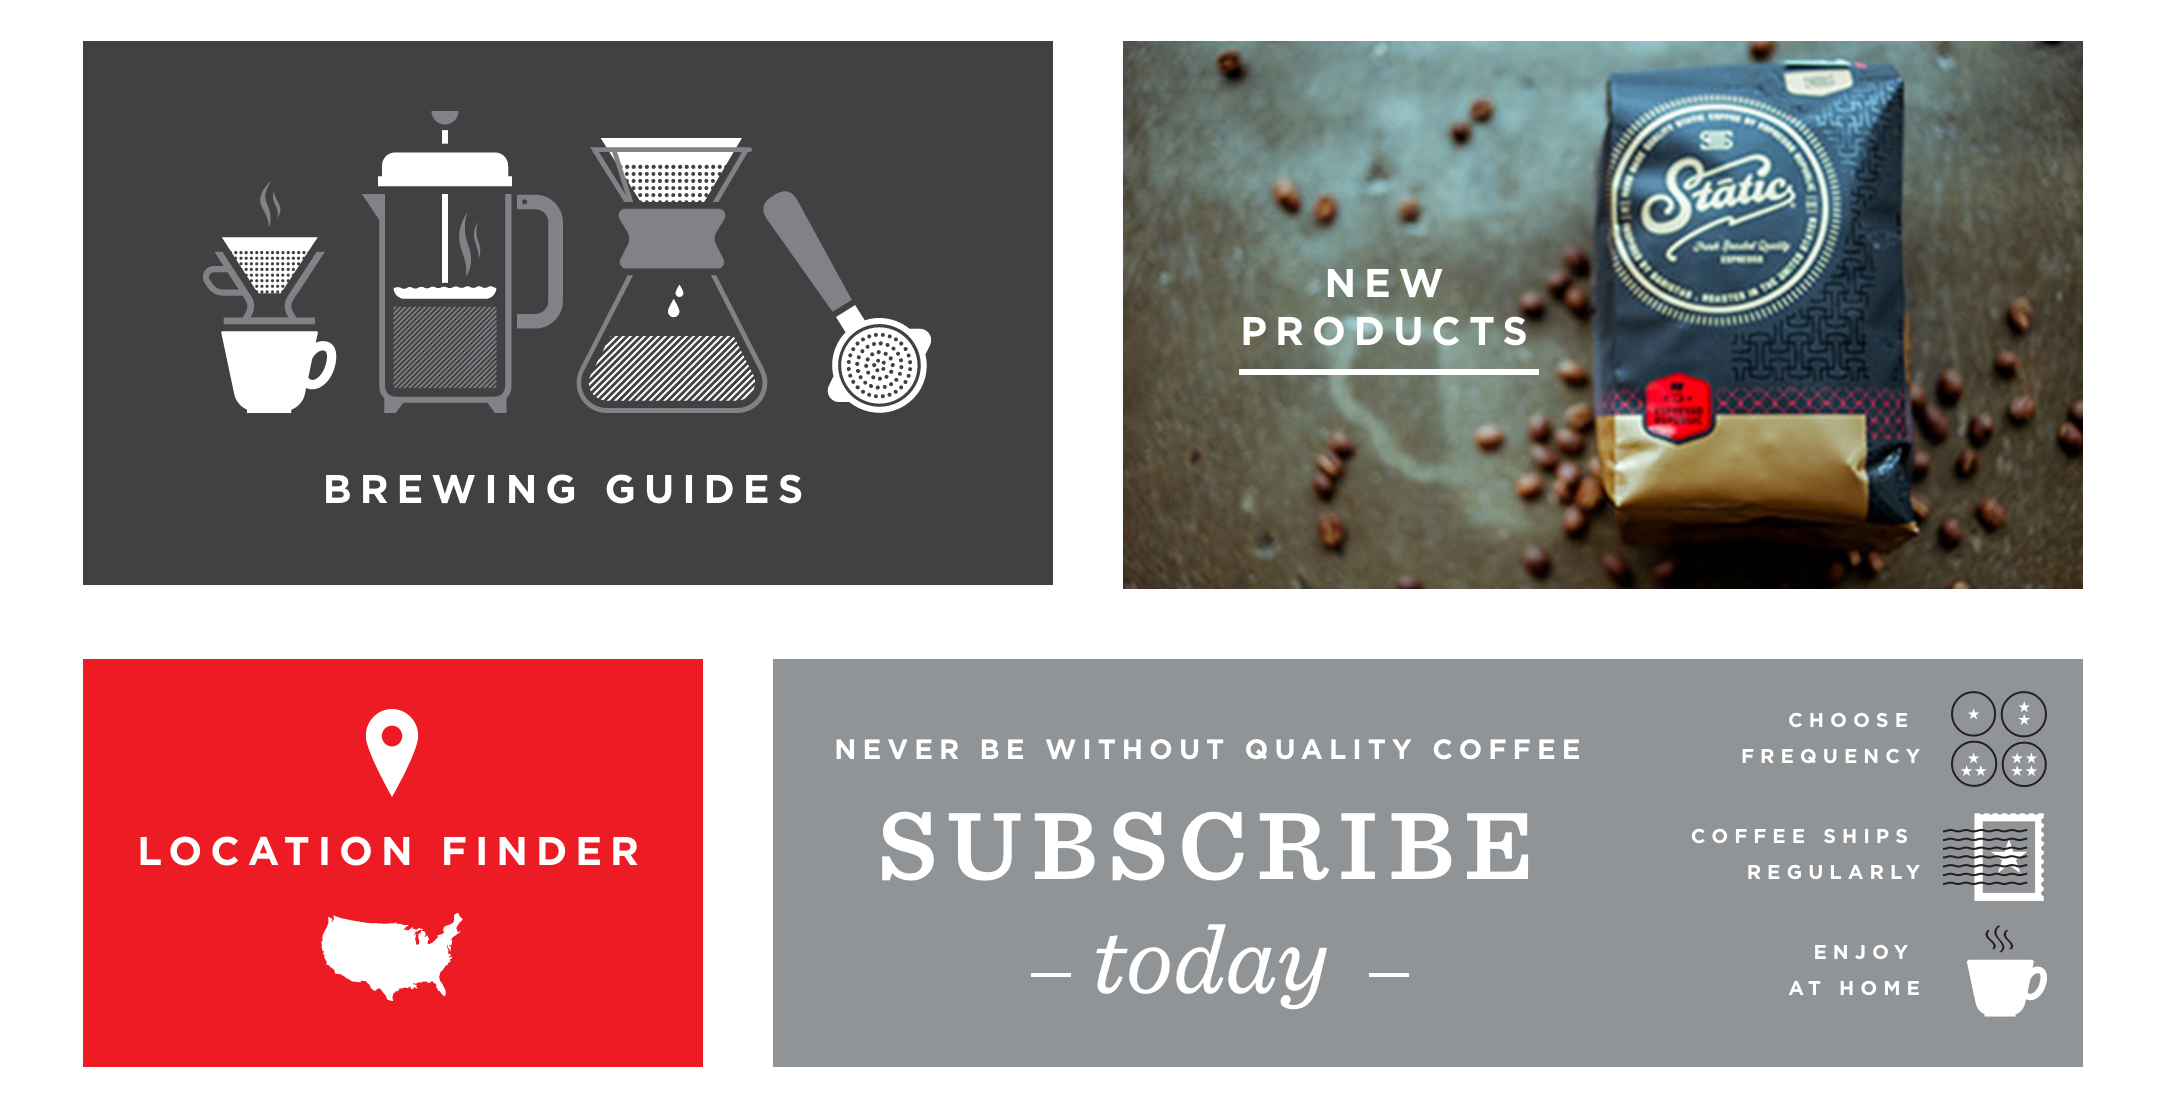 Wonderful coffee, and a subscription option made available for those of you who might like it.